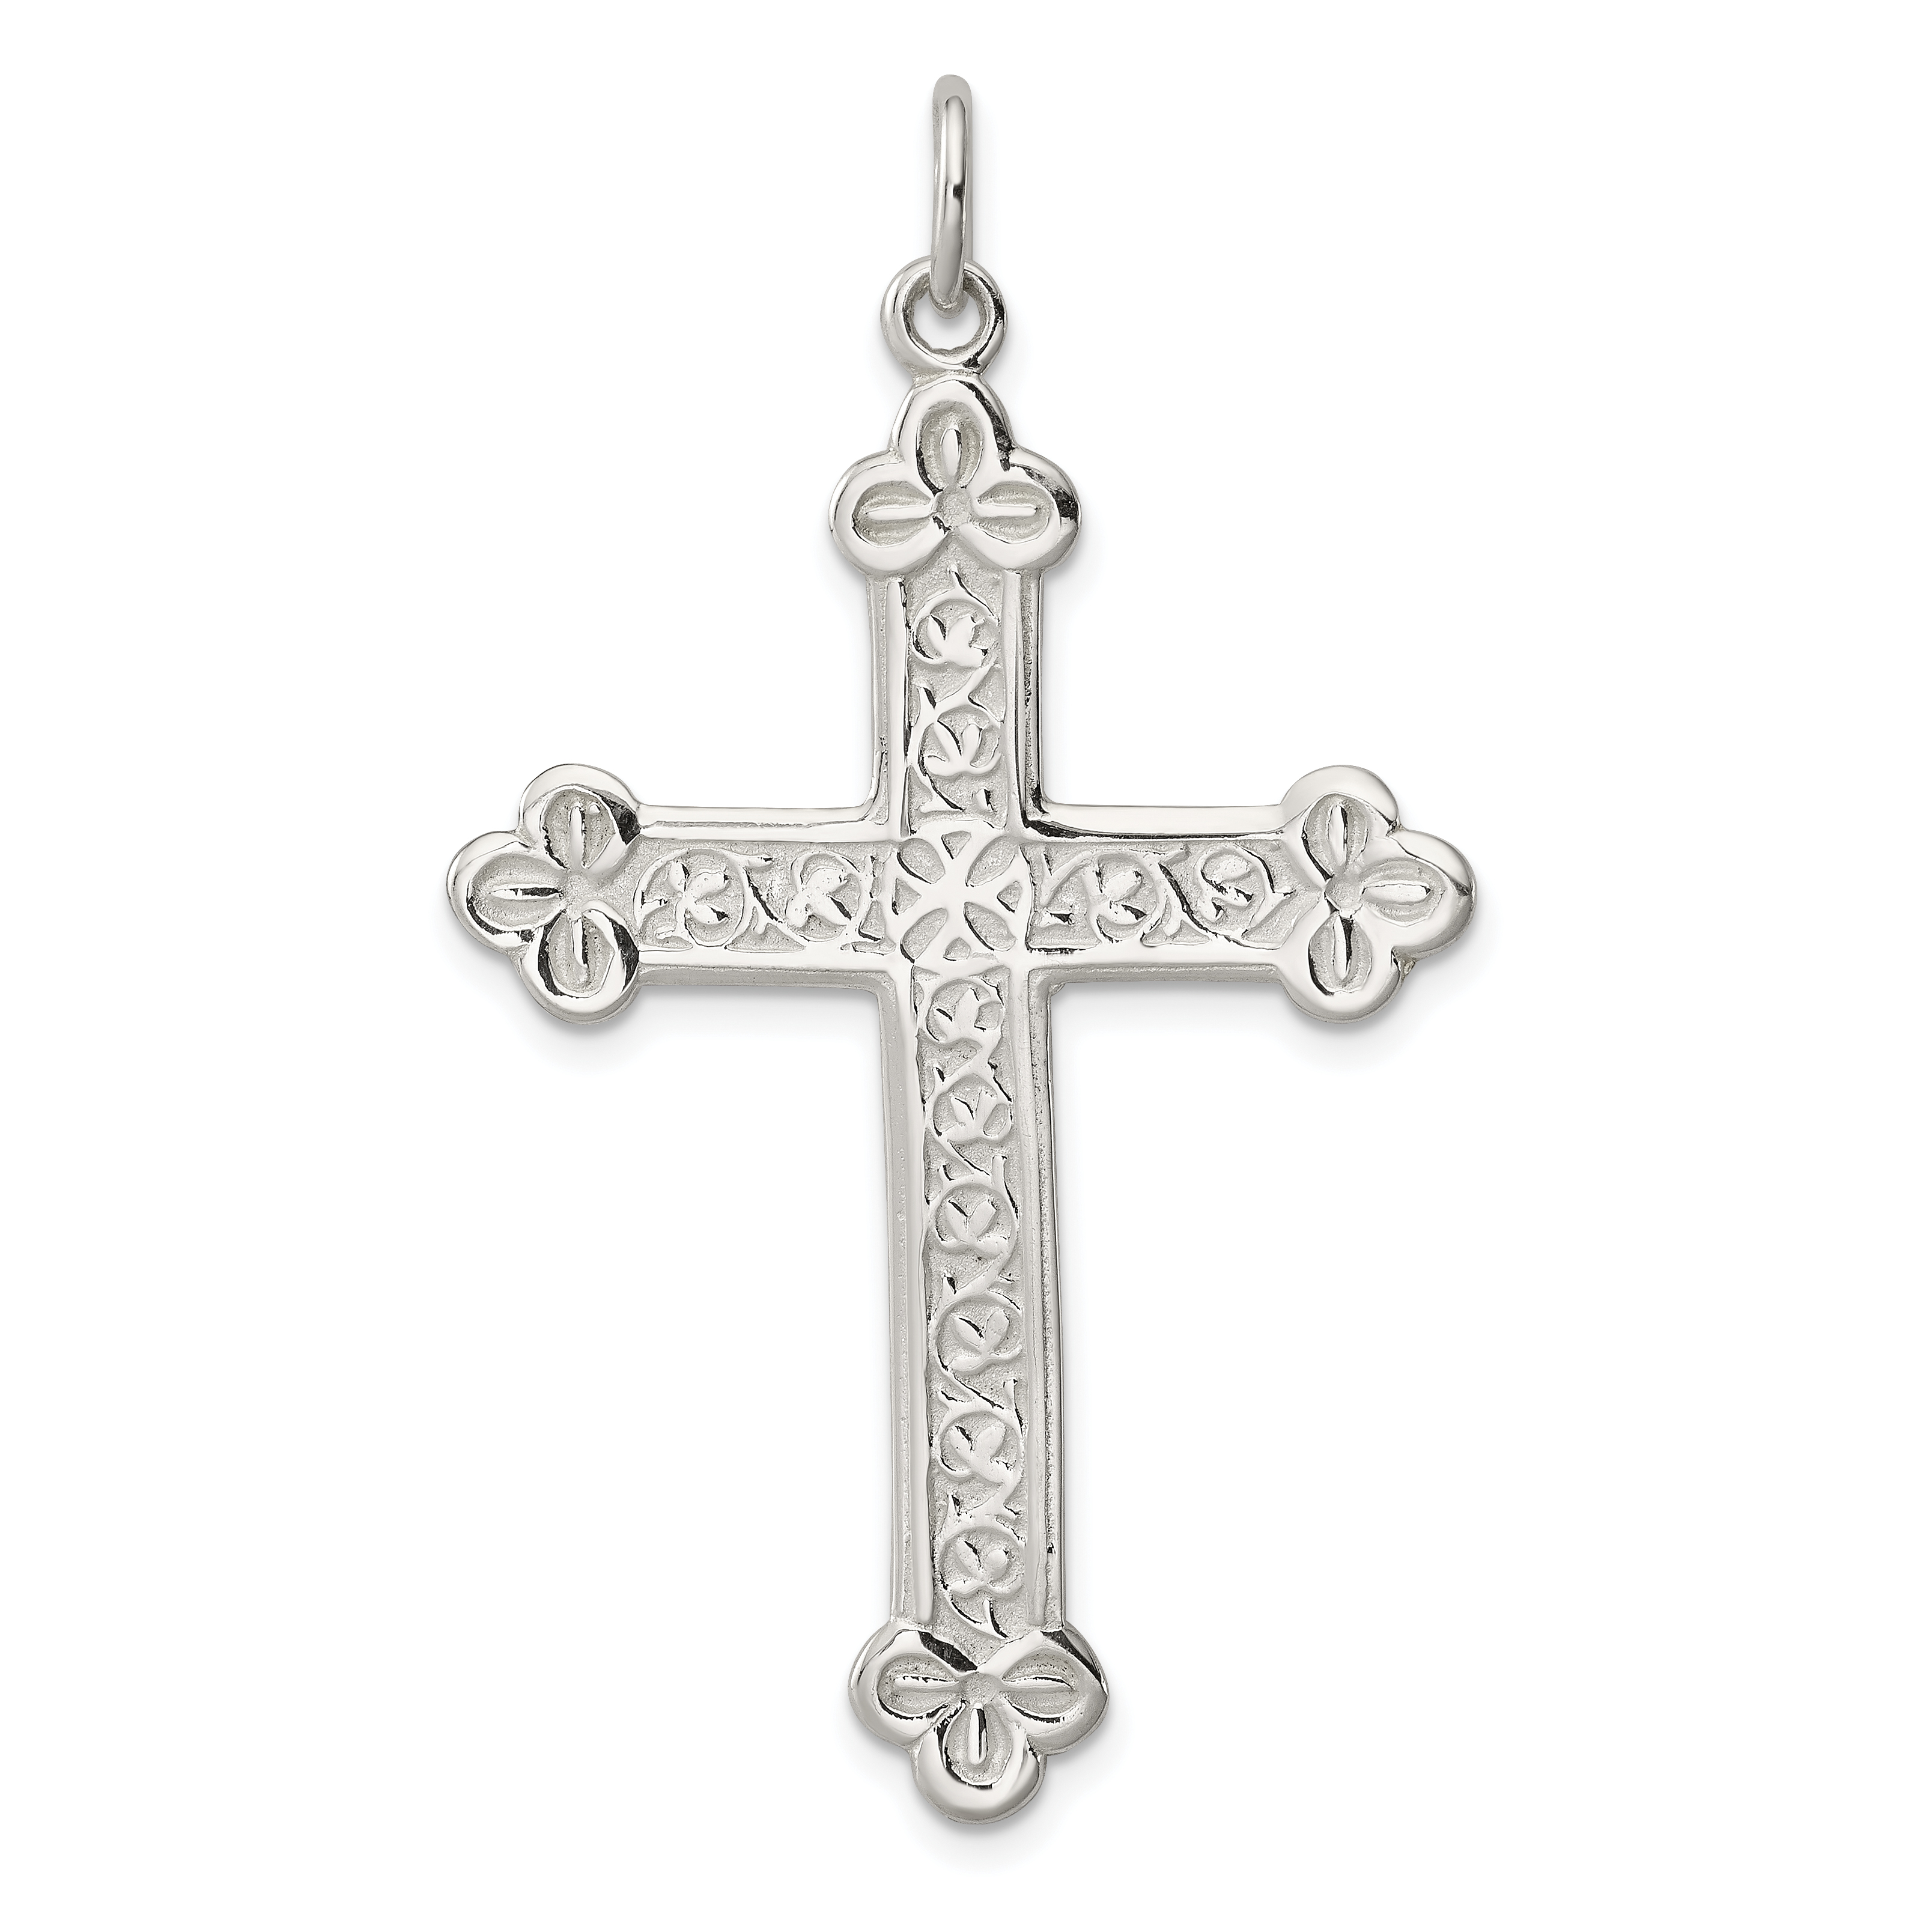 Jewels Obsession Cross Necklace Rhodium-plated 925 Silver Budded Cross Pendant with 16 Necklace